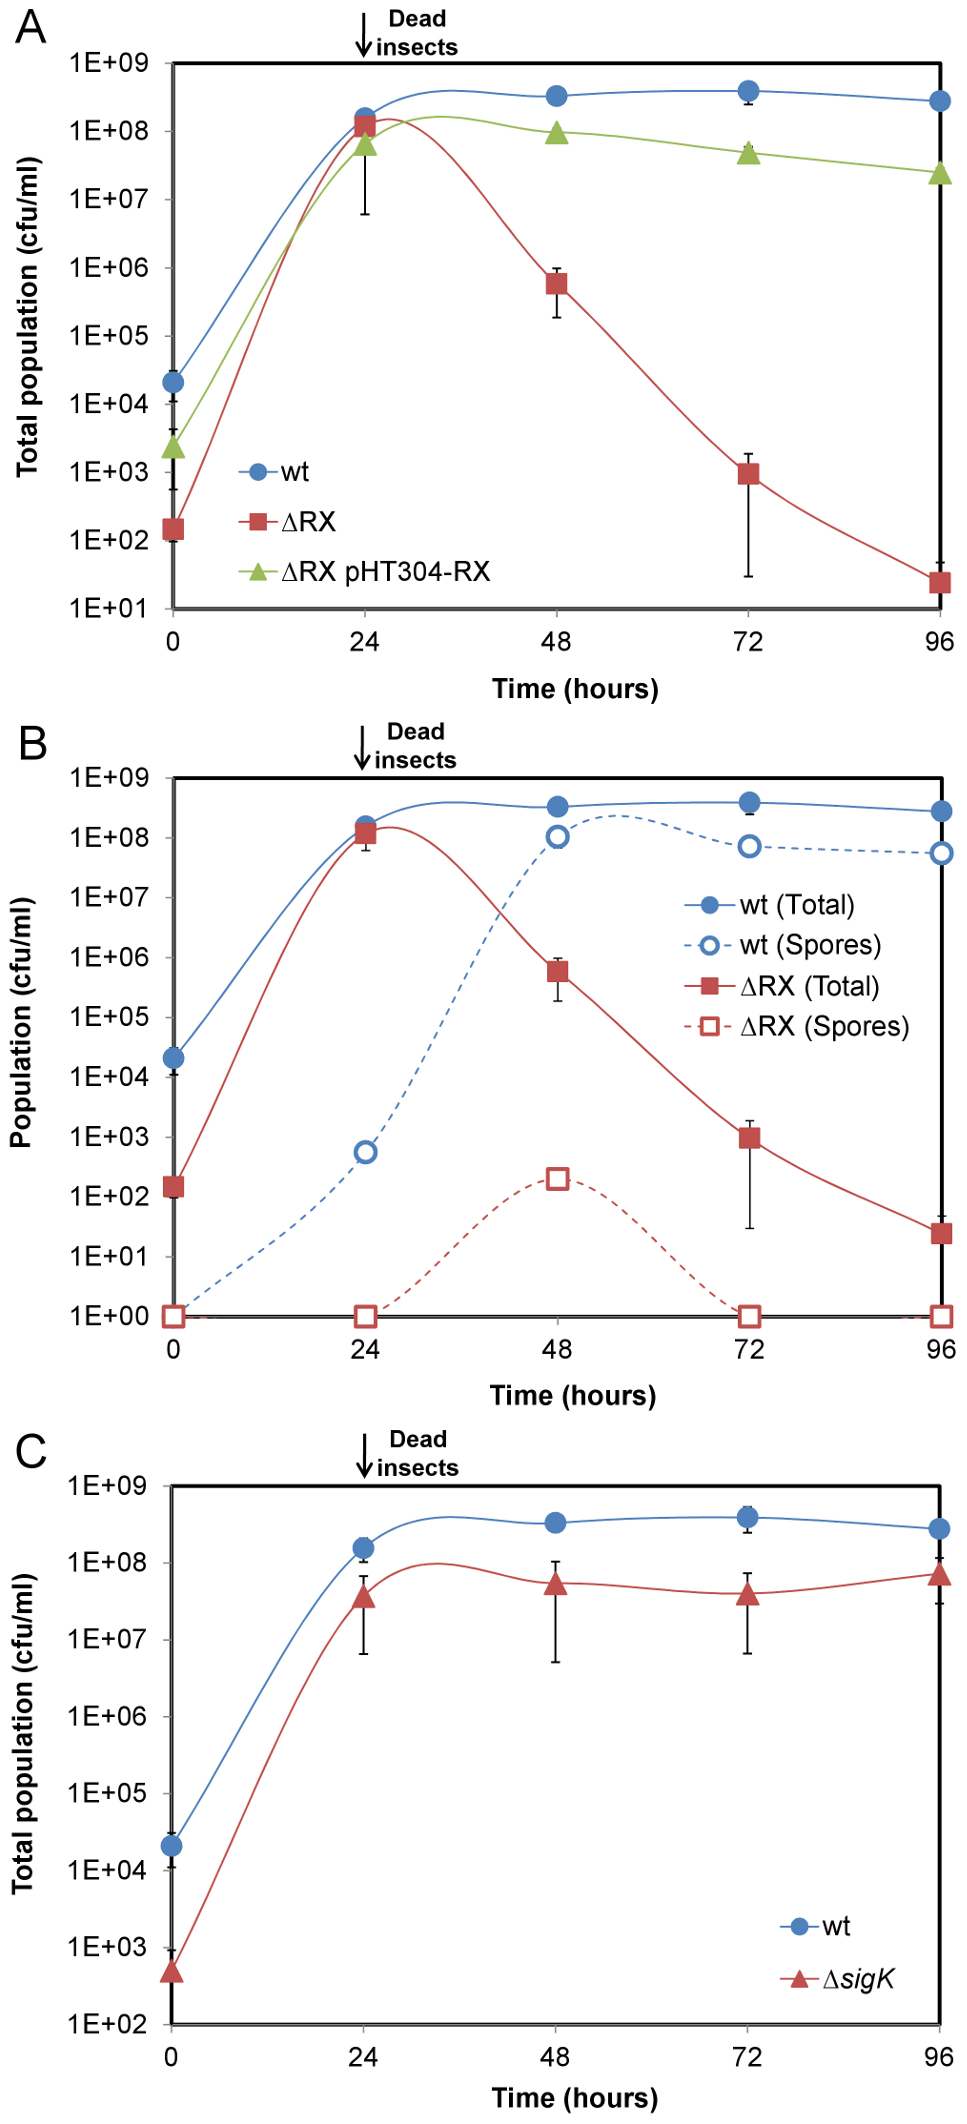 NprR allows <i>Bt</i> to survive in insect cadavers by a process independent of sporulation.